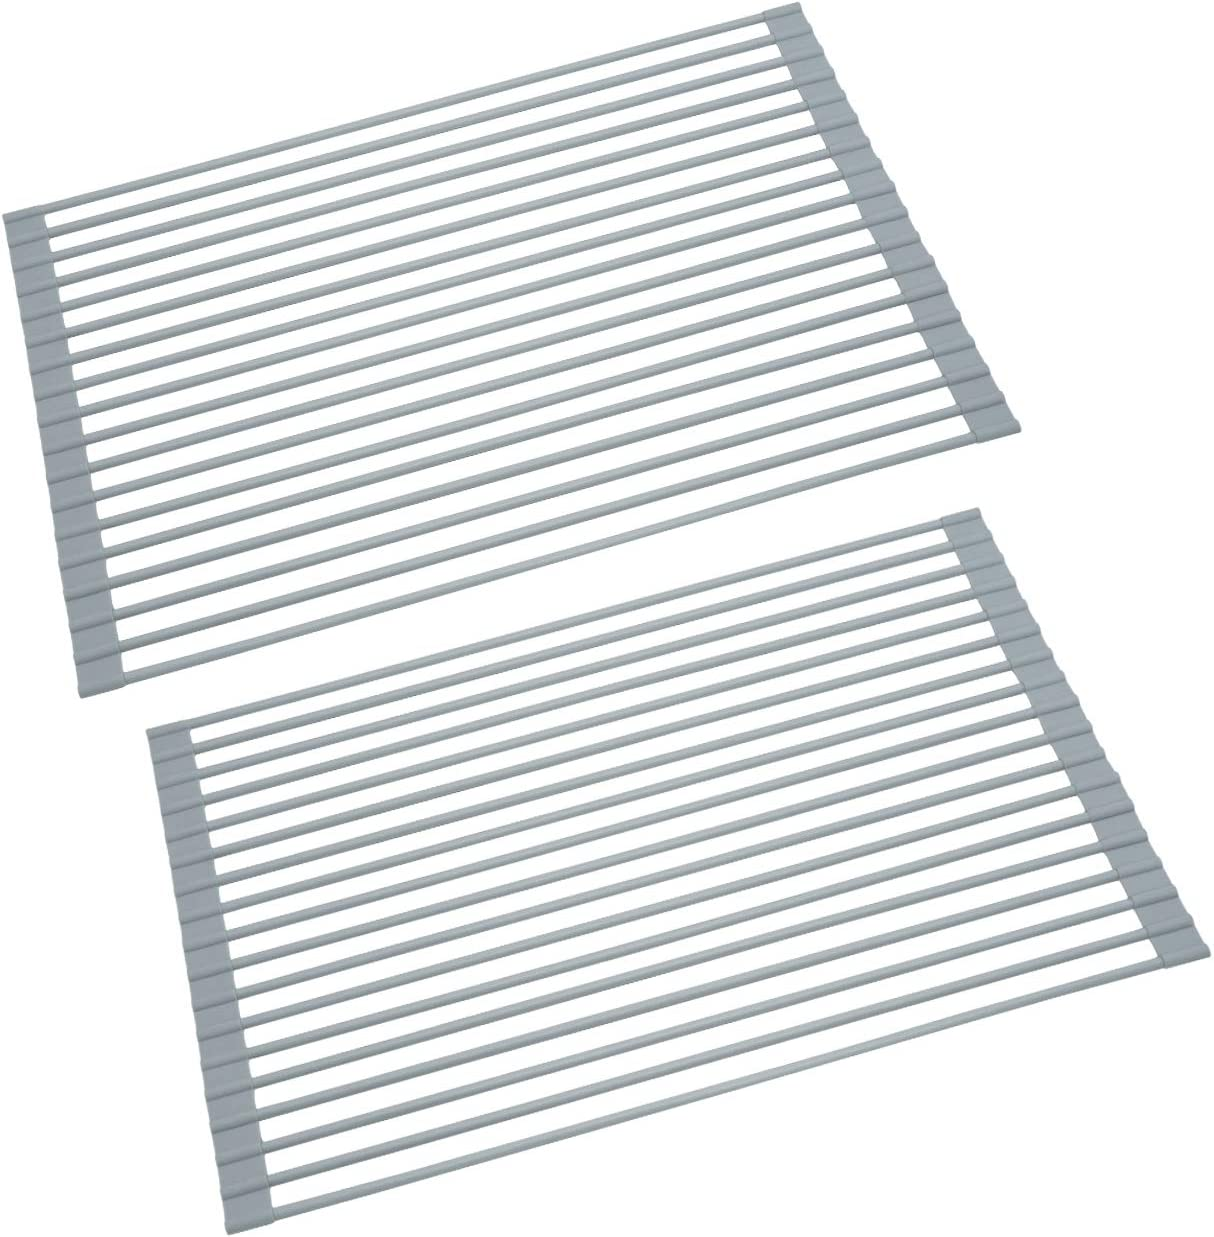 "KES Over The Sink Dish Drying Rack 20.5"" x 13"" Roll Up Dish Rack 2 Packs Sink Drying Rack Multipurpose Collapsible Dish Drying Mat for Kitchen, PDR500-GR-P2"